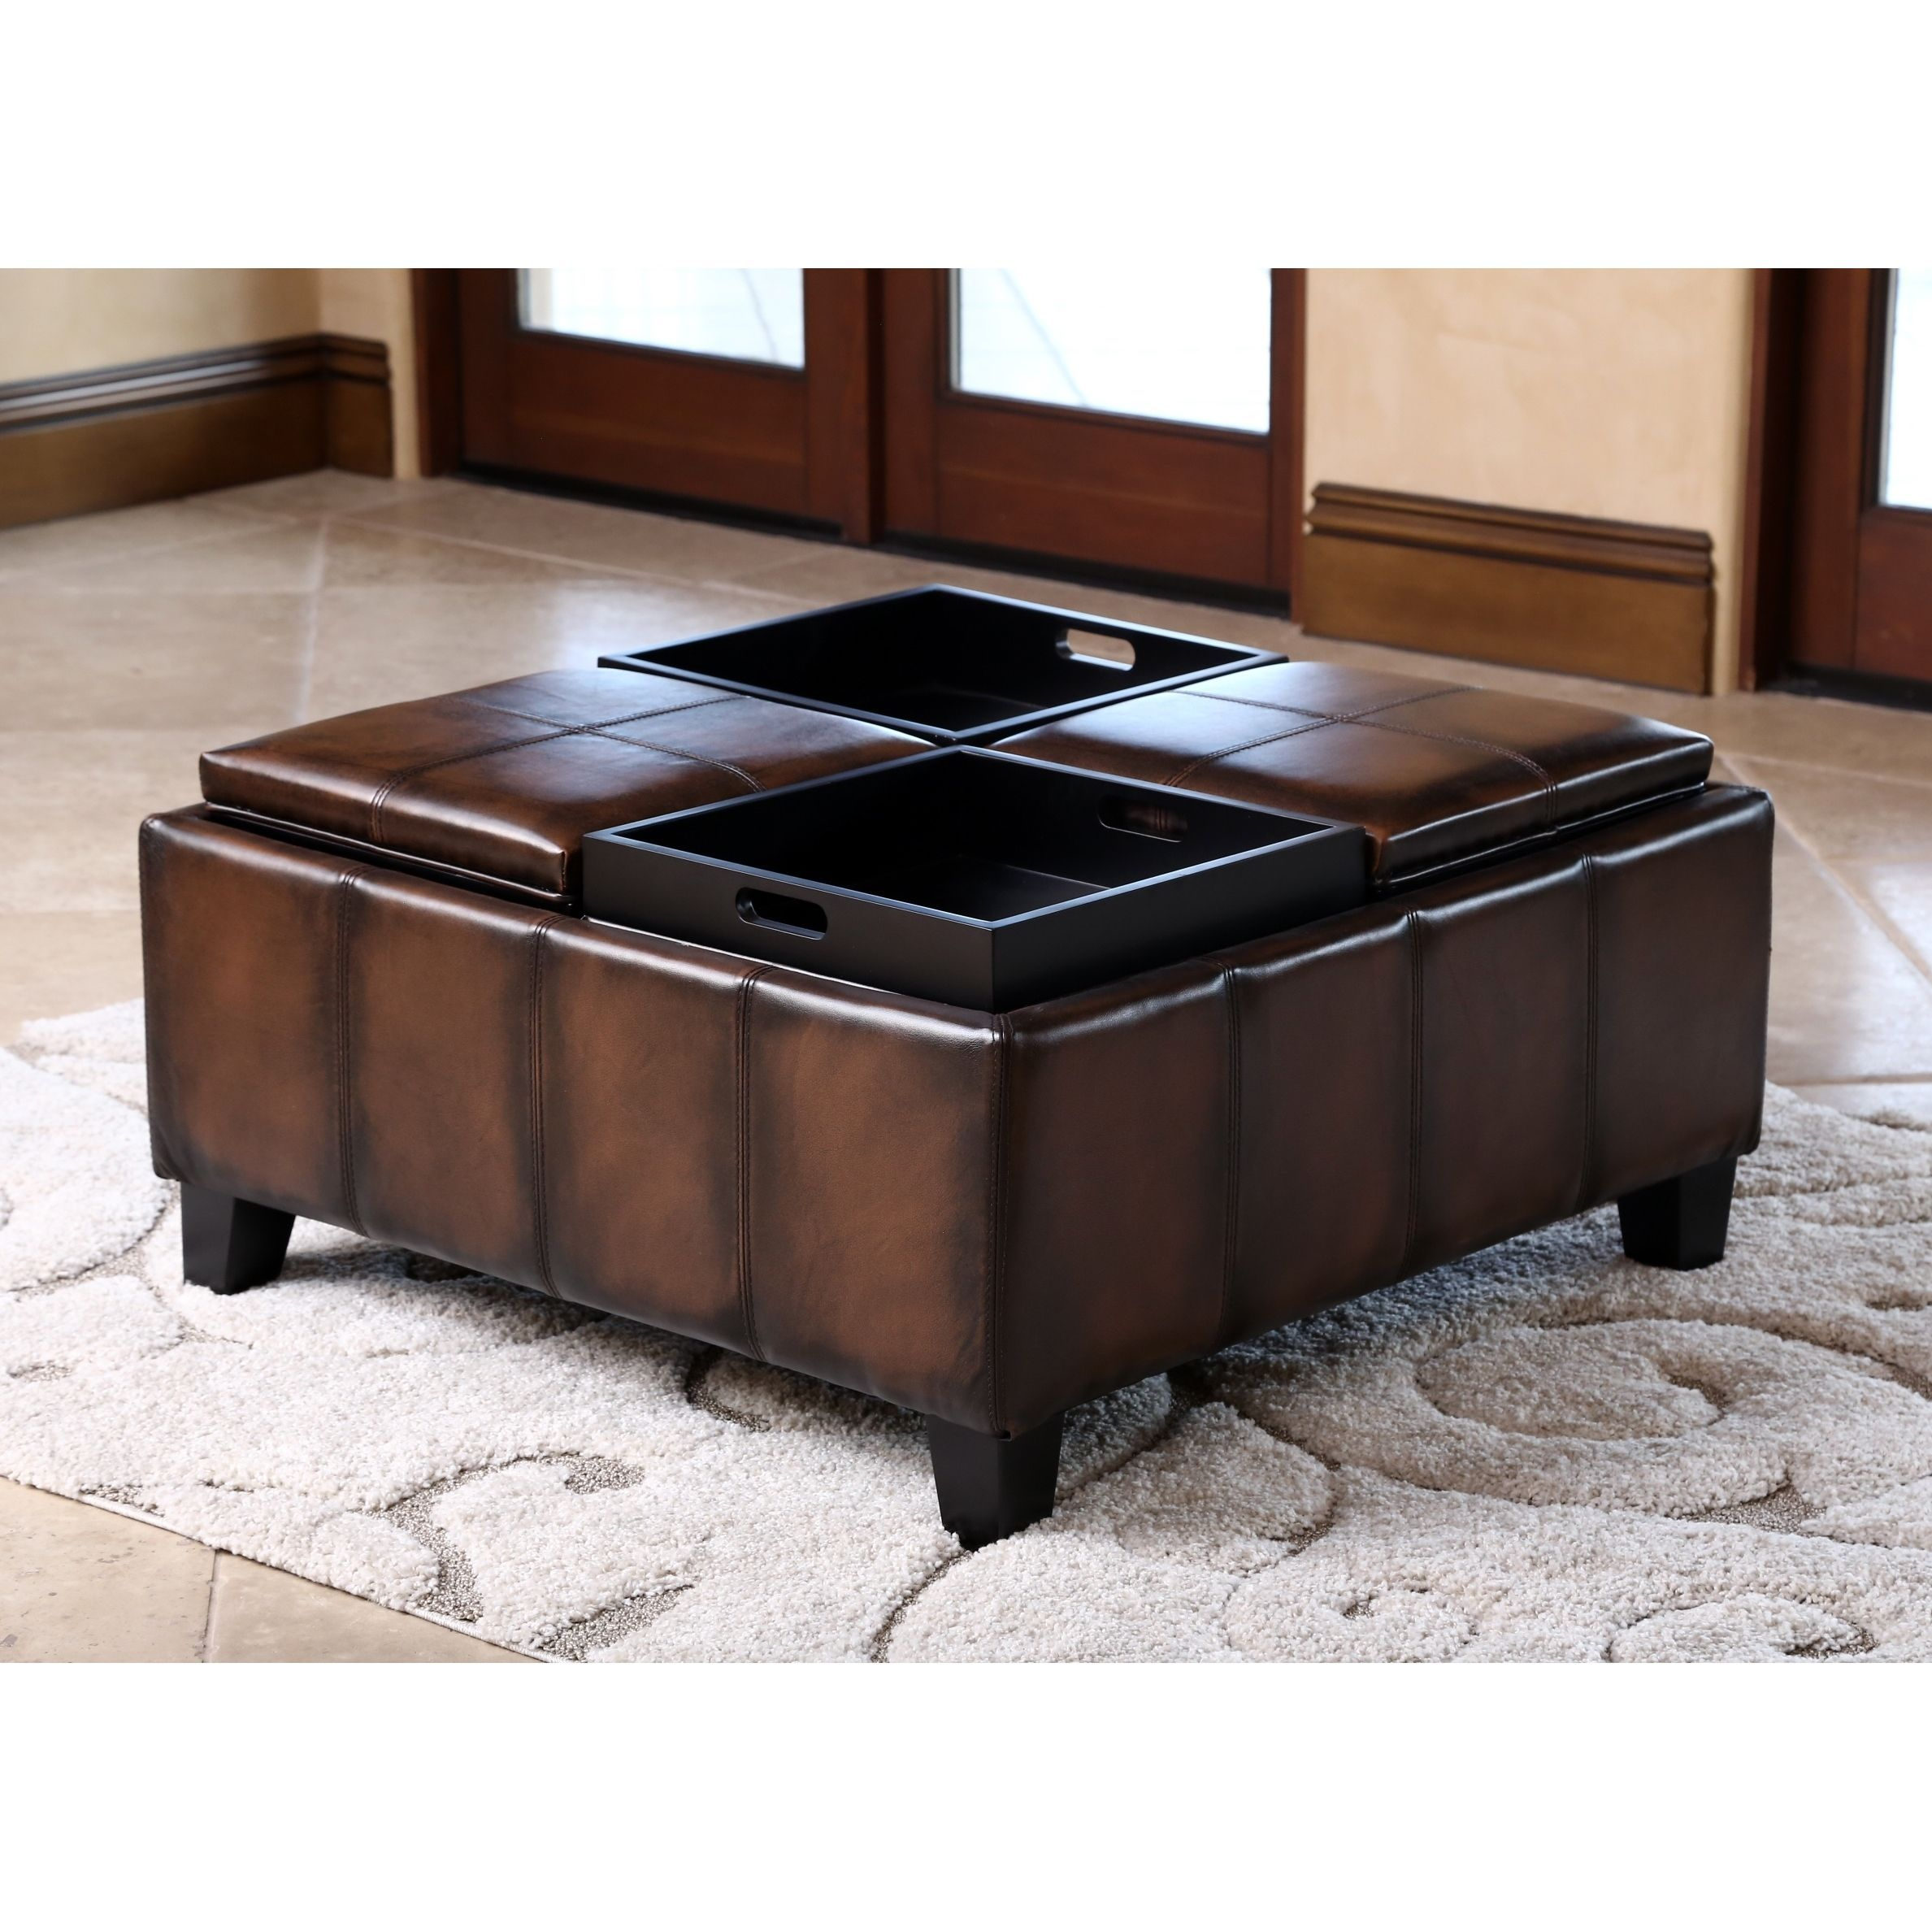 Enhance Decor With Elegant Leather Ottoman Featuring Solid Hardwood Legs And Four